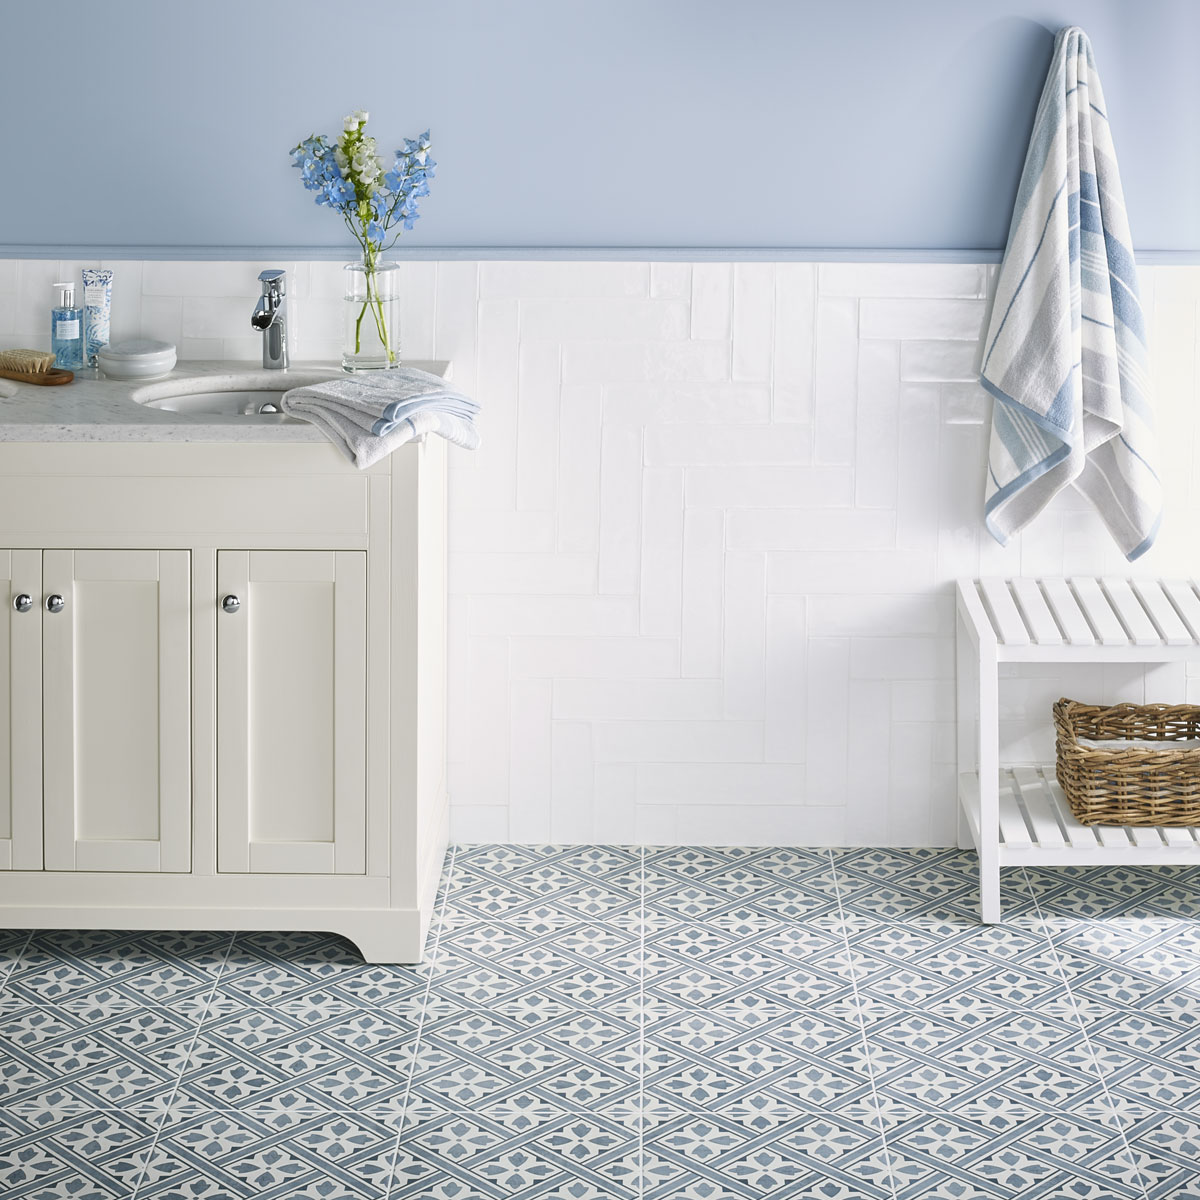 Introducing The New Additions To Our Tile Collection